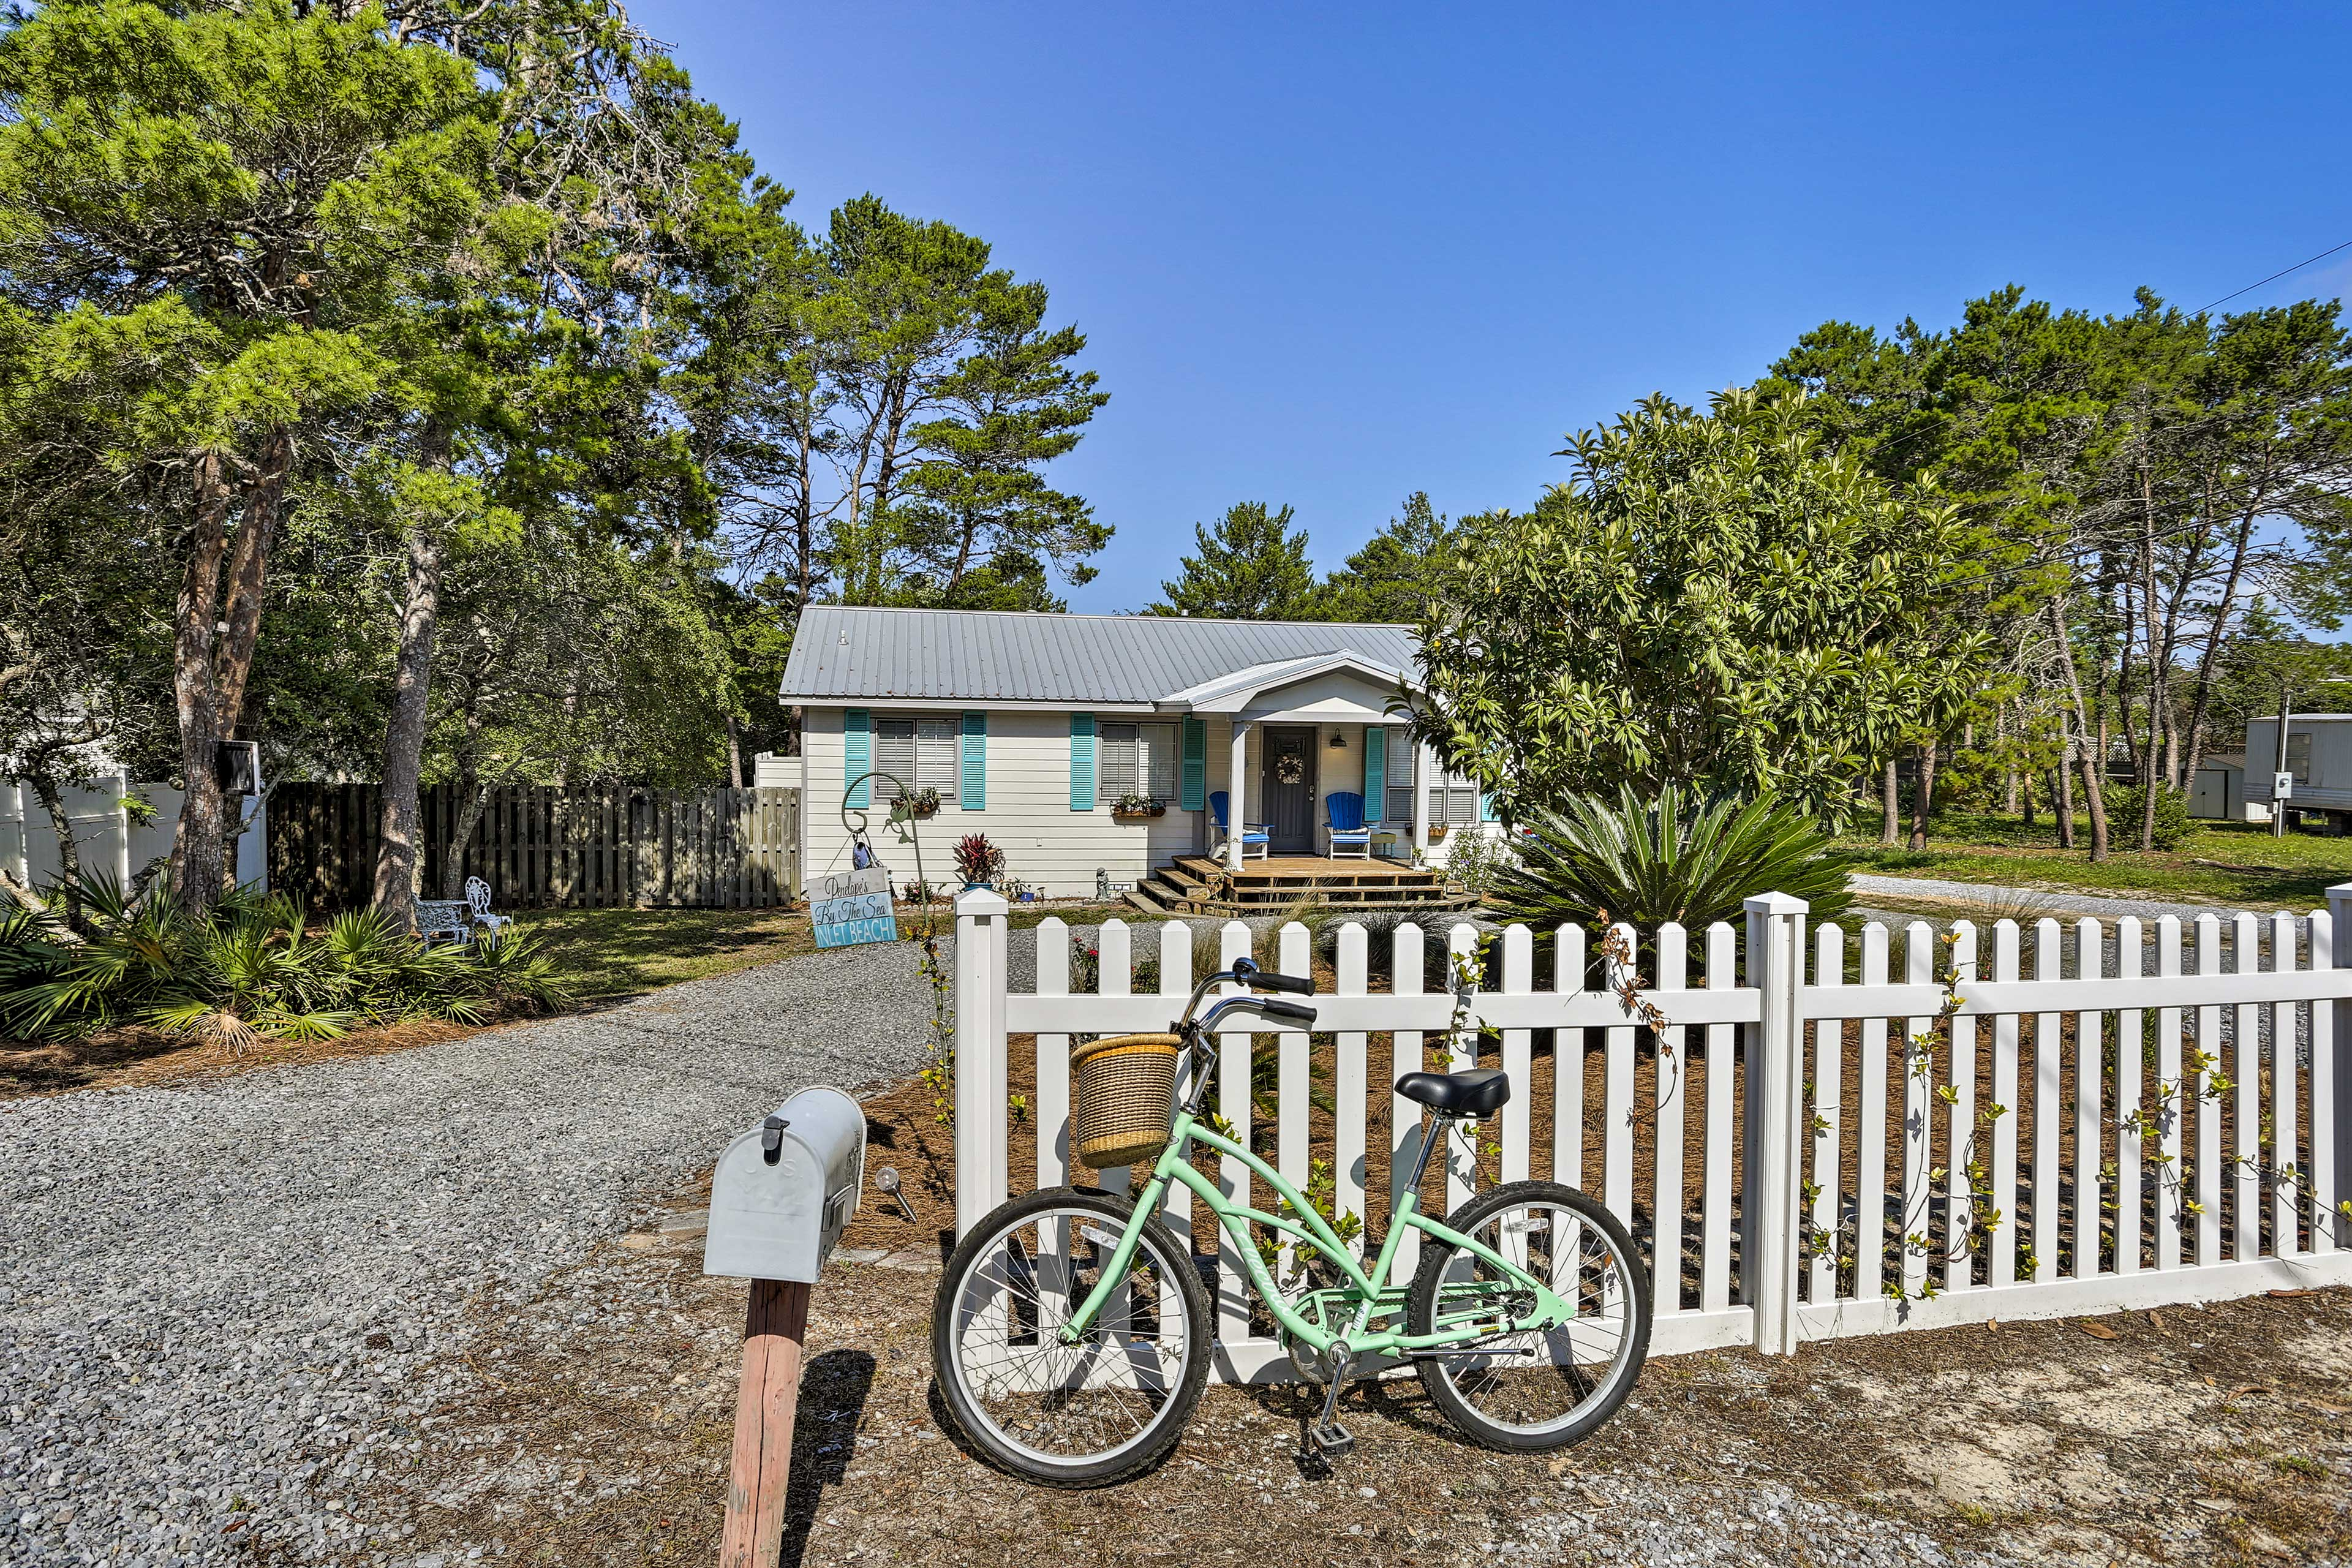 Bring along a bicycle for an easygoing cruise along the peaceful roads.